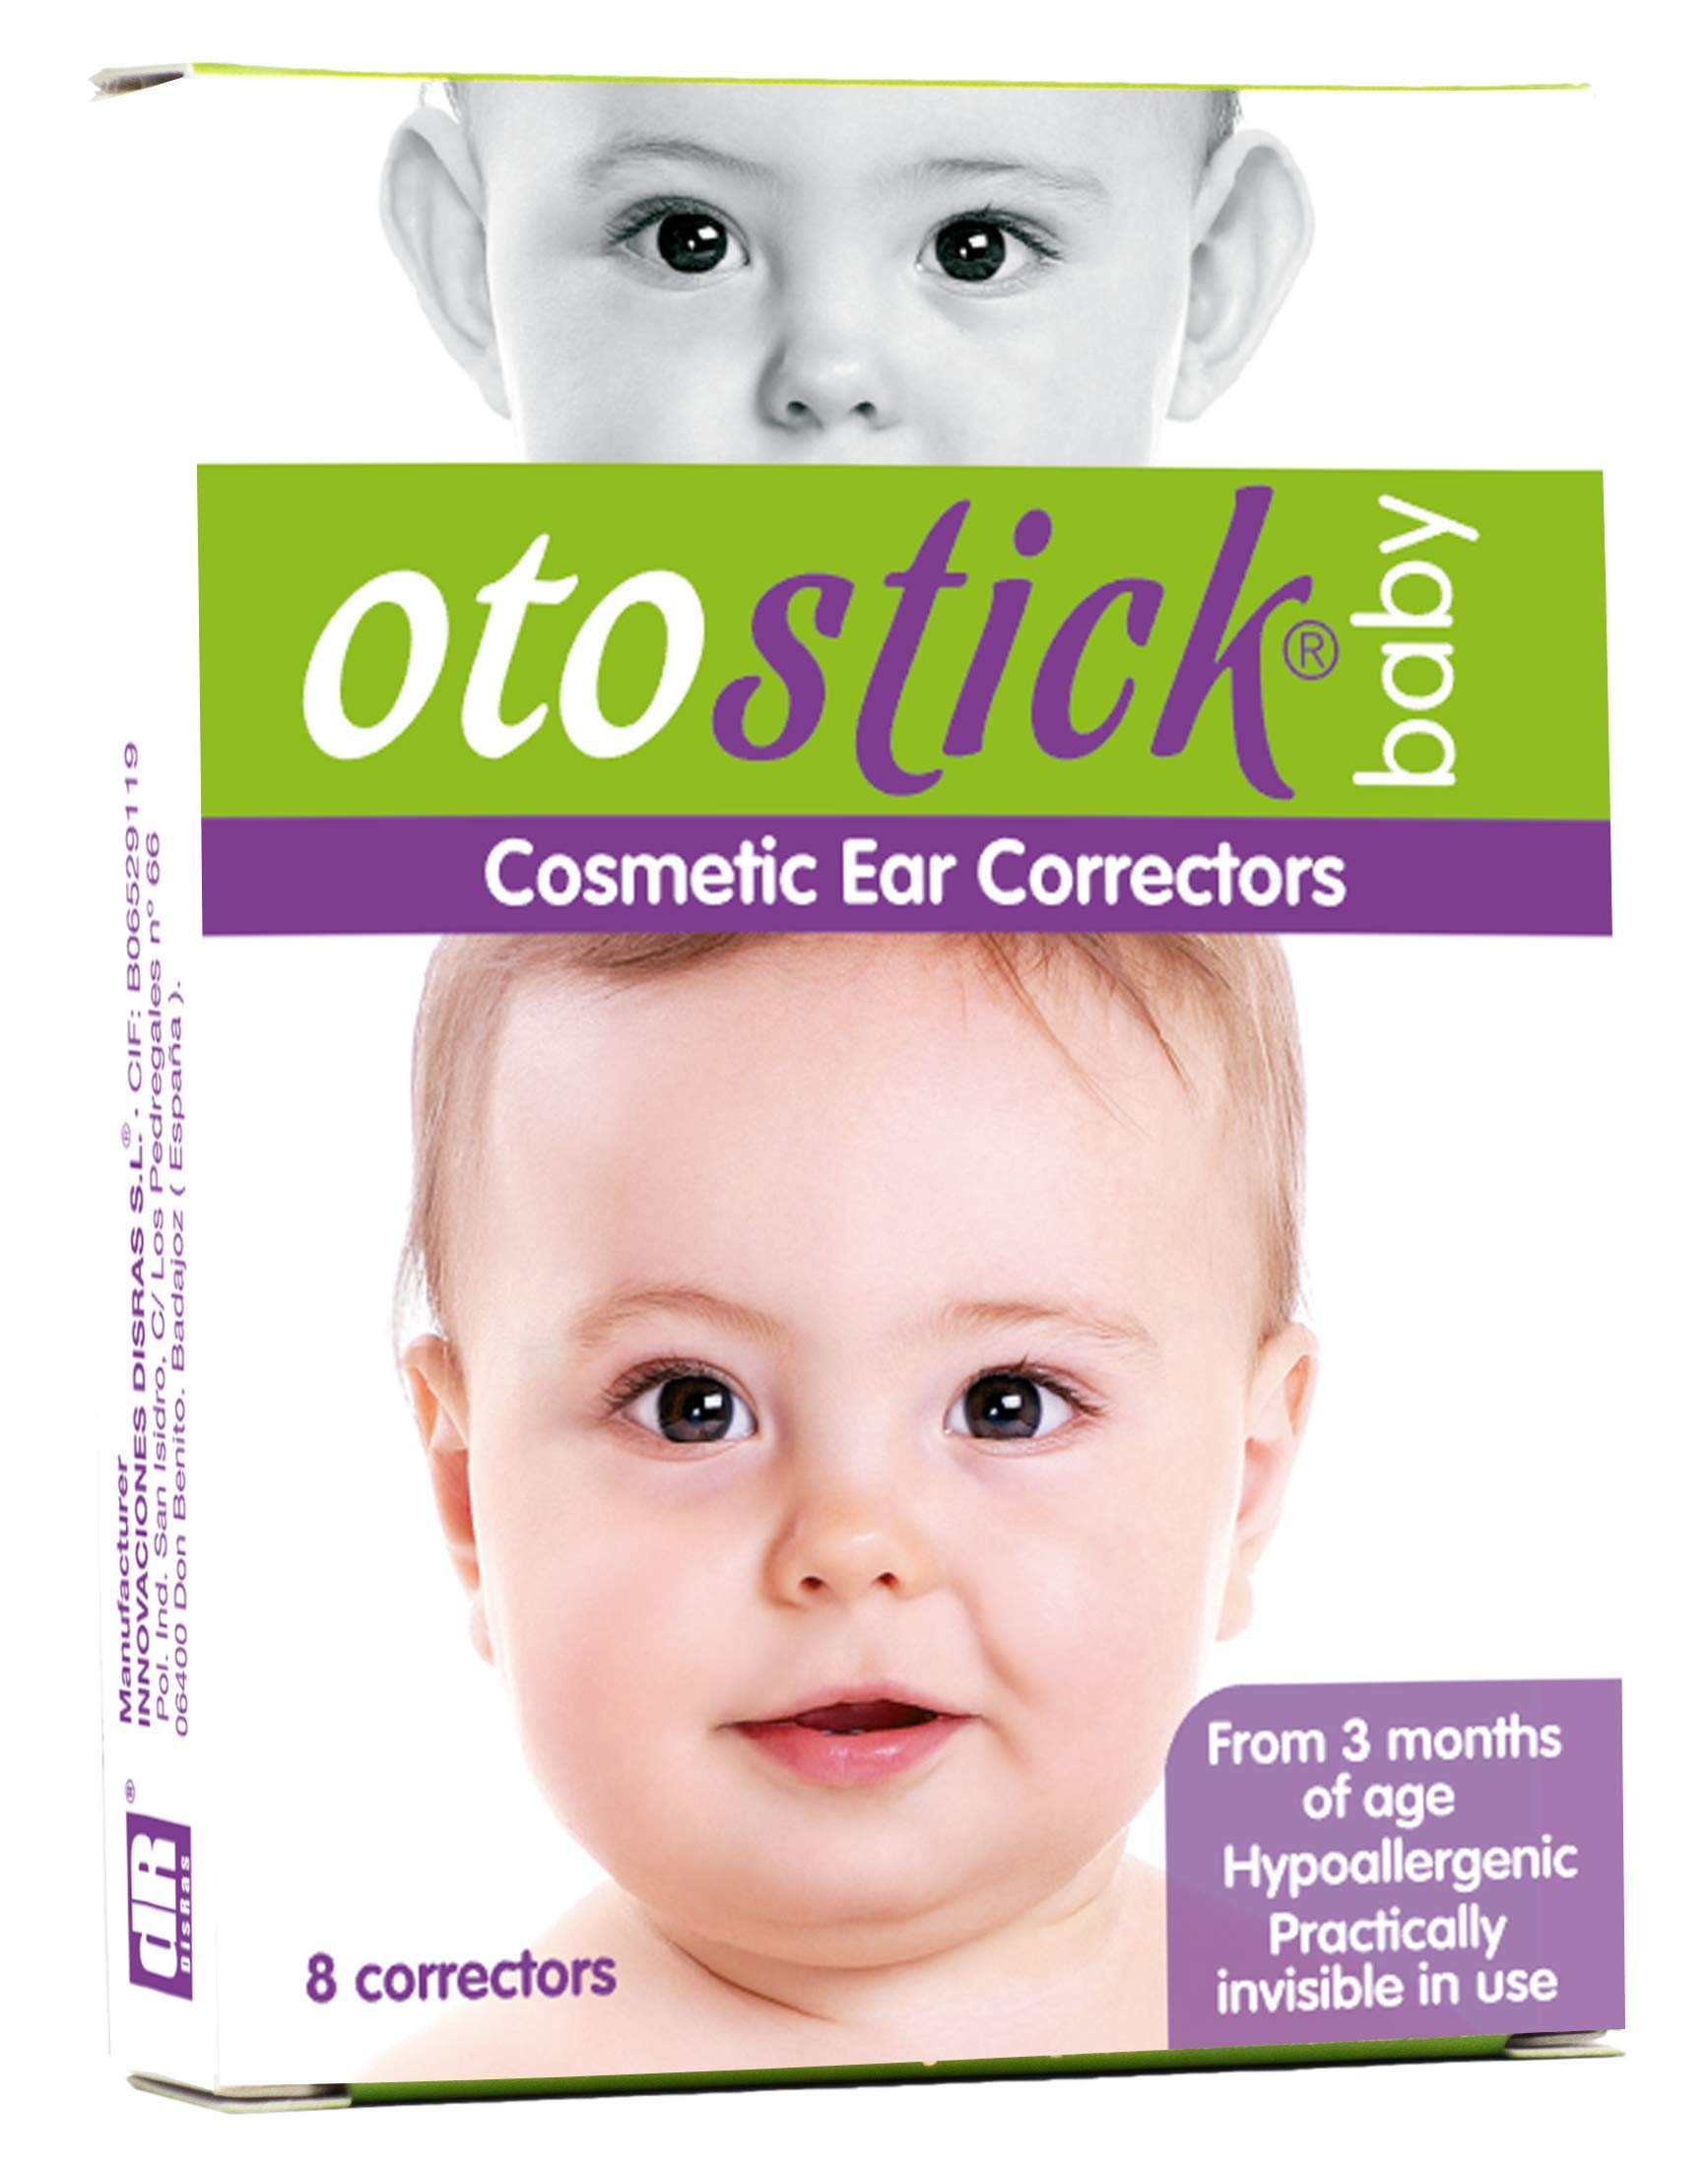 Otostick® Baby aesthetic correctors for protruding ears.